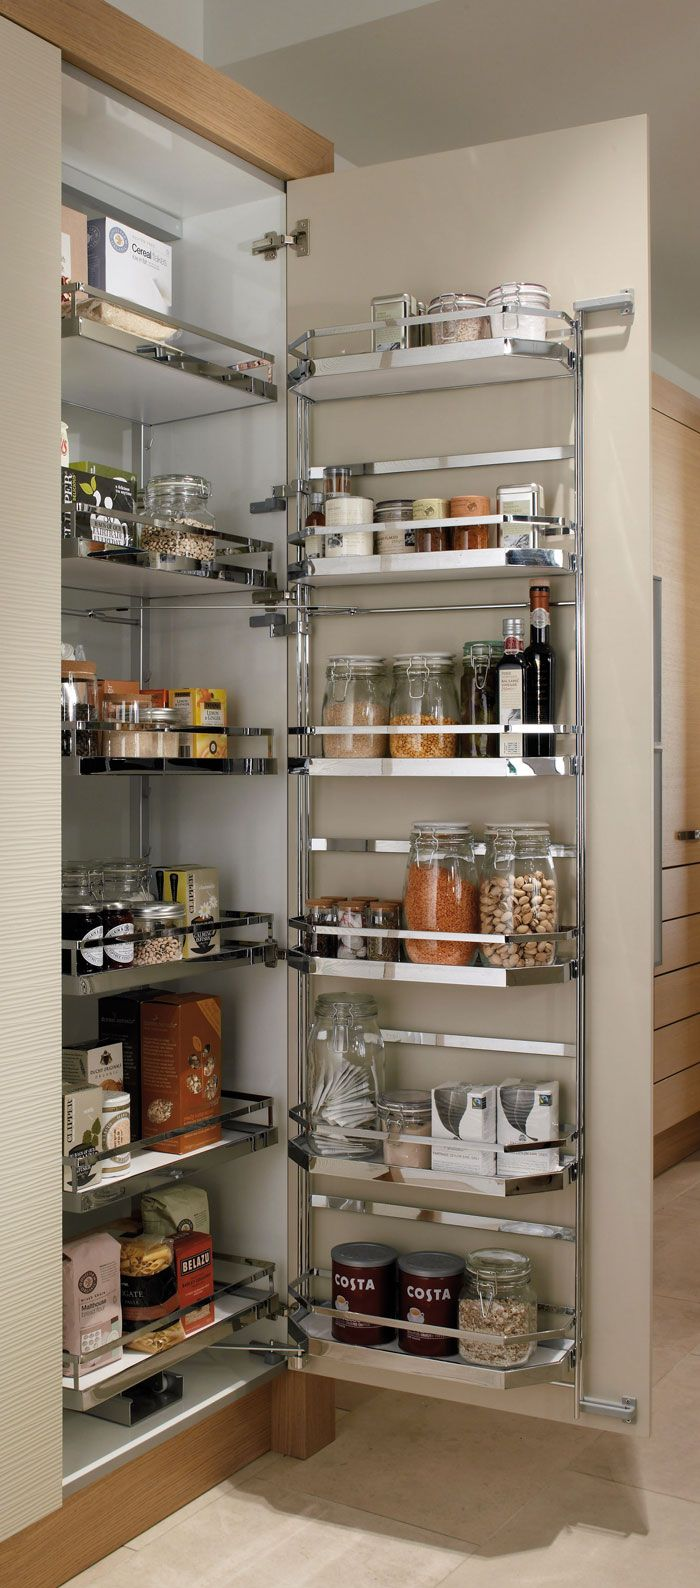 best 25 larder storage ideas on pinterest pantry cupboard the top 10 the best kitchen storage ideas top 10 the best kitchen storage ideas huge storage with pull out tandem larder